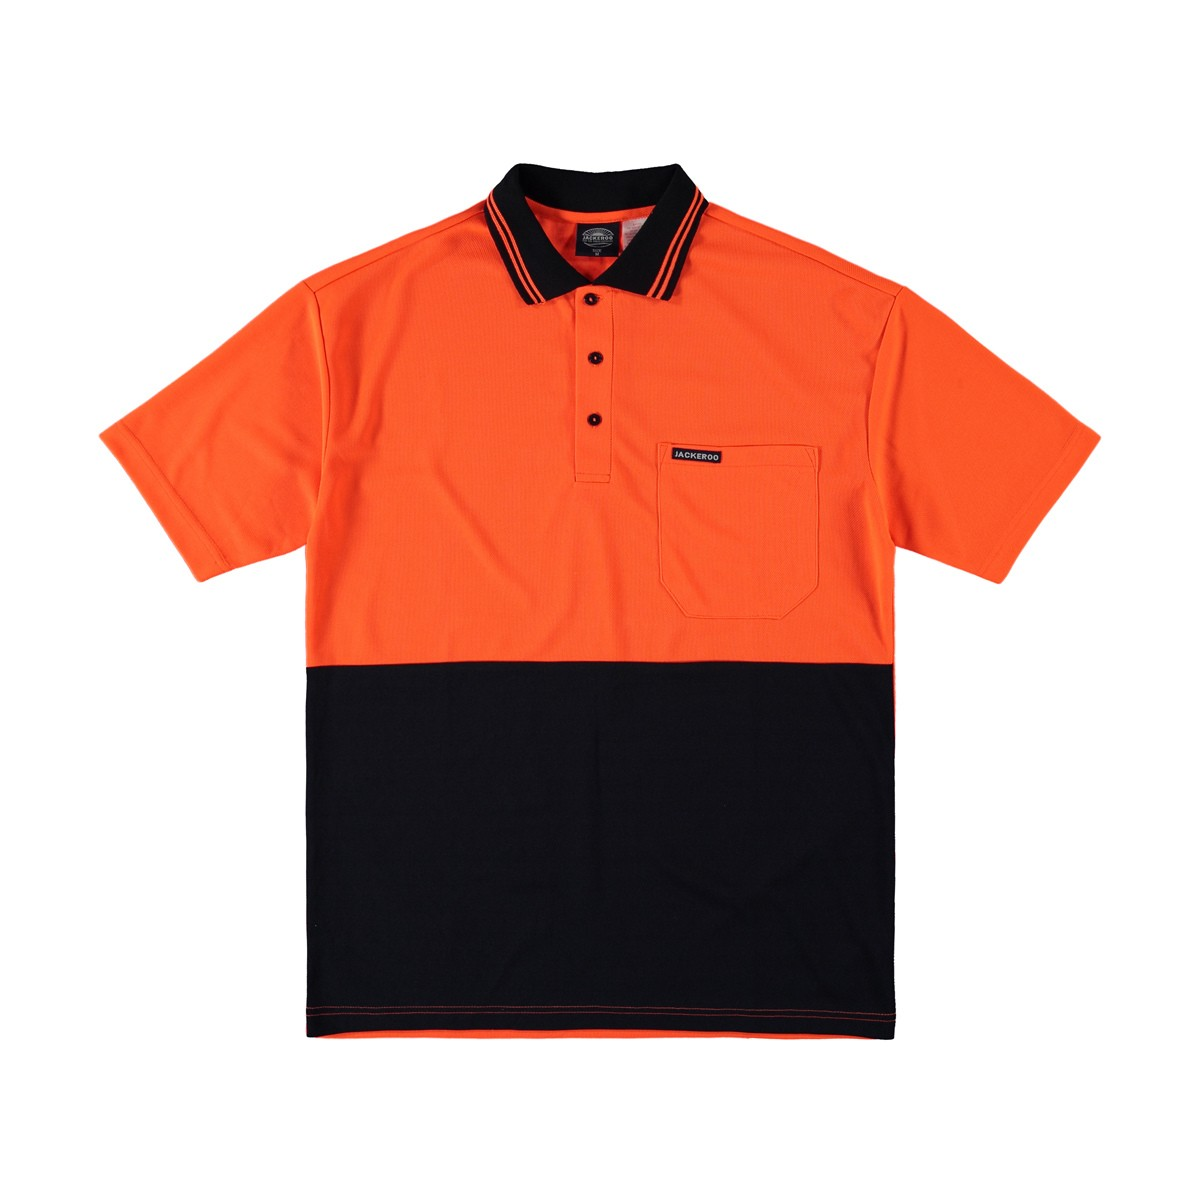 Custom short sleeve orange fluo